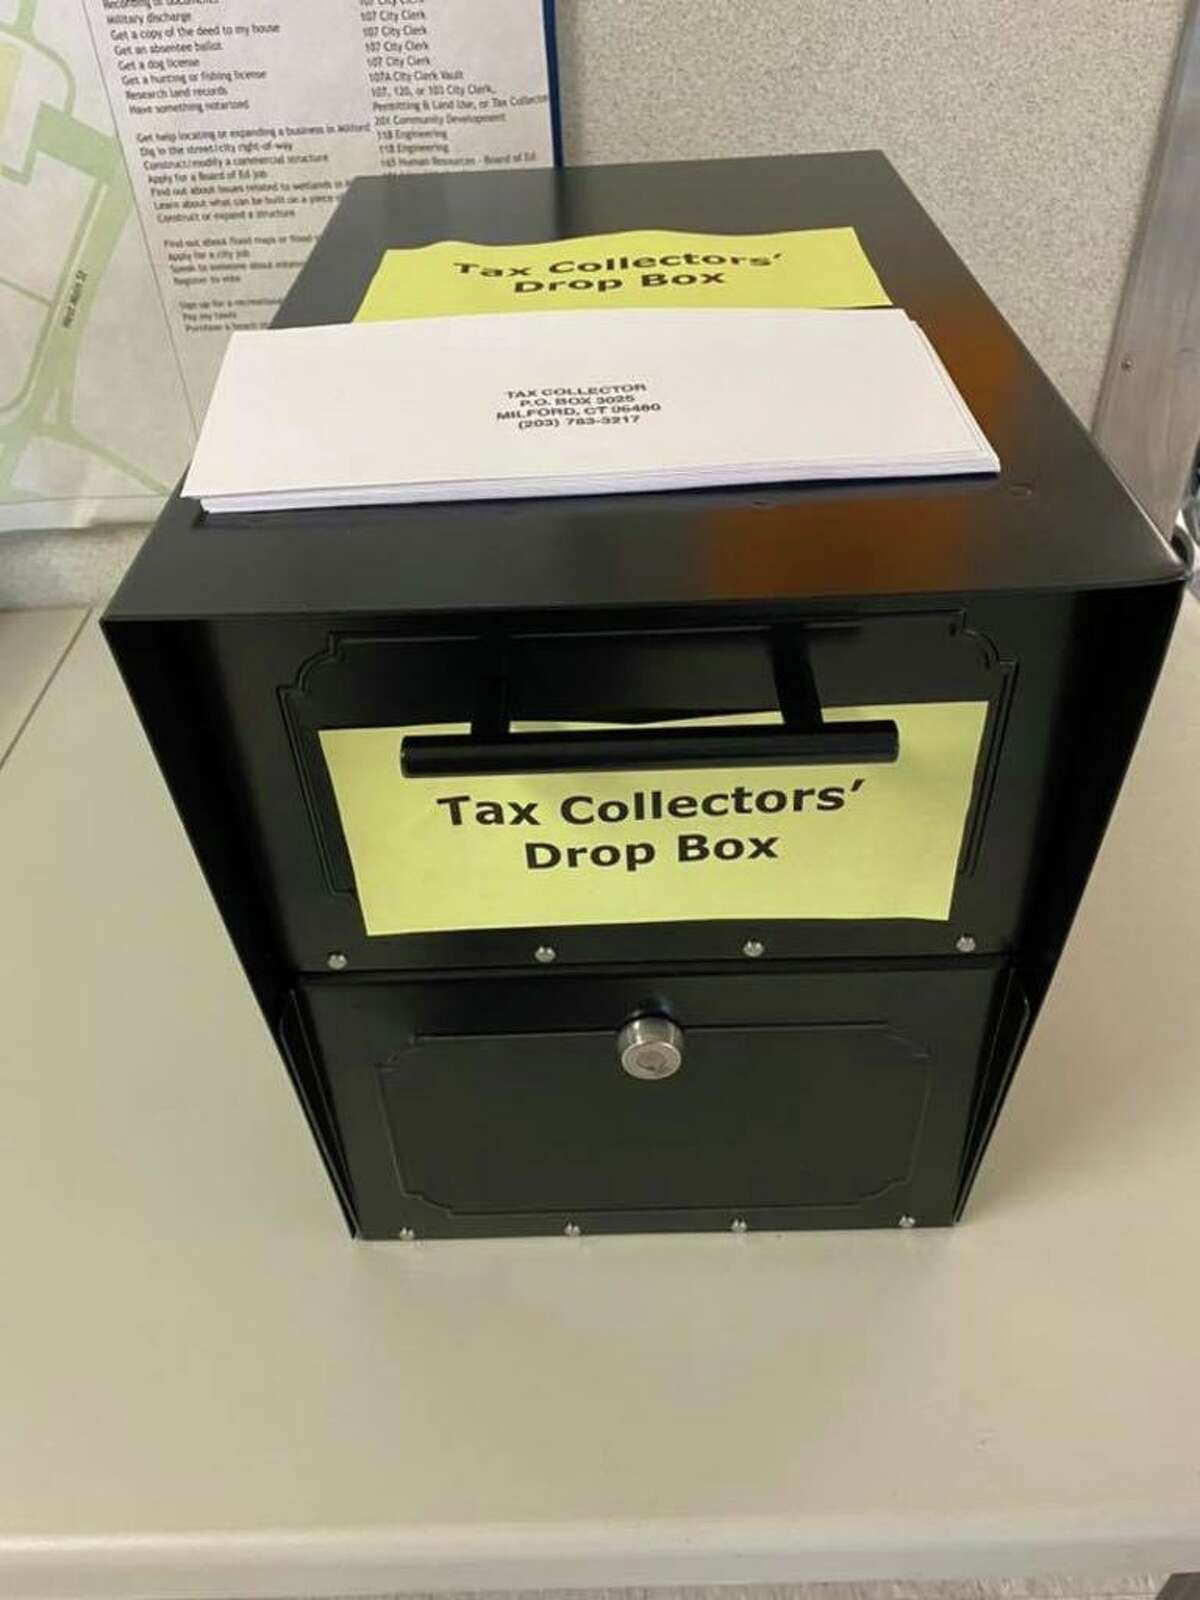 The city of Milford Tax Collector policy on delinquent payments is on its website.